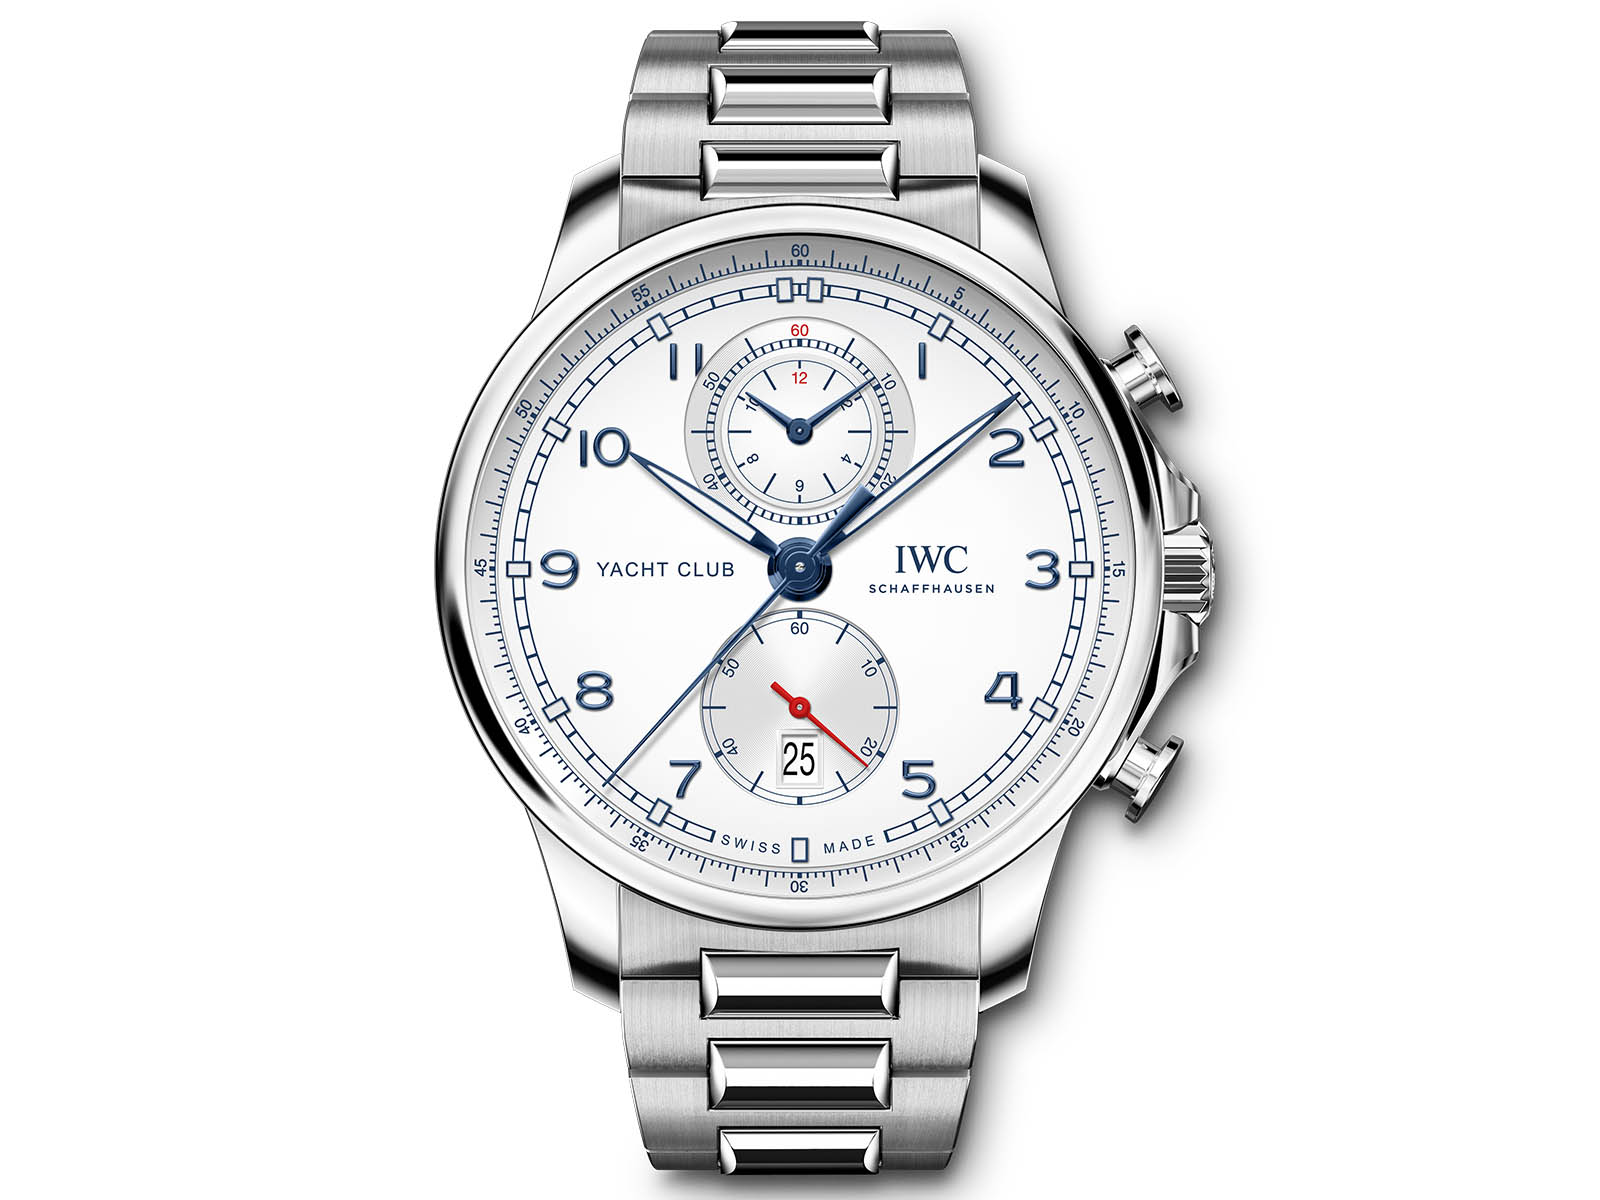 iw390702-iwc-schaffhausen-portugieser-yacht-club-moon-tide-and-chronograph-watches-wonders-2020-1.jpg